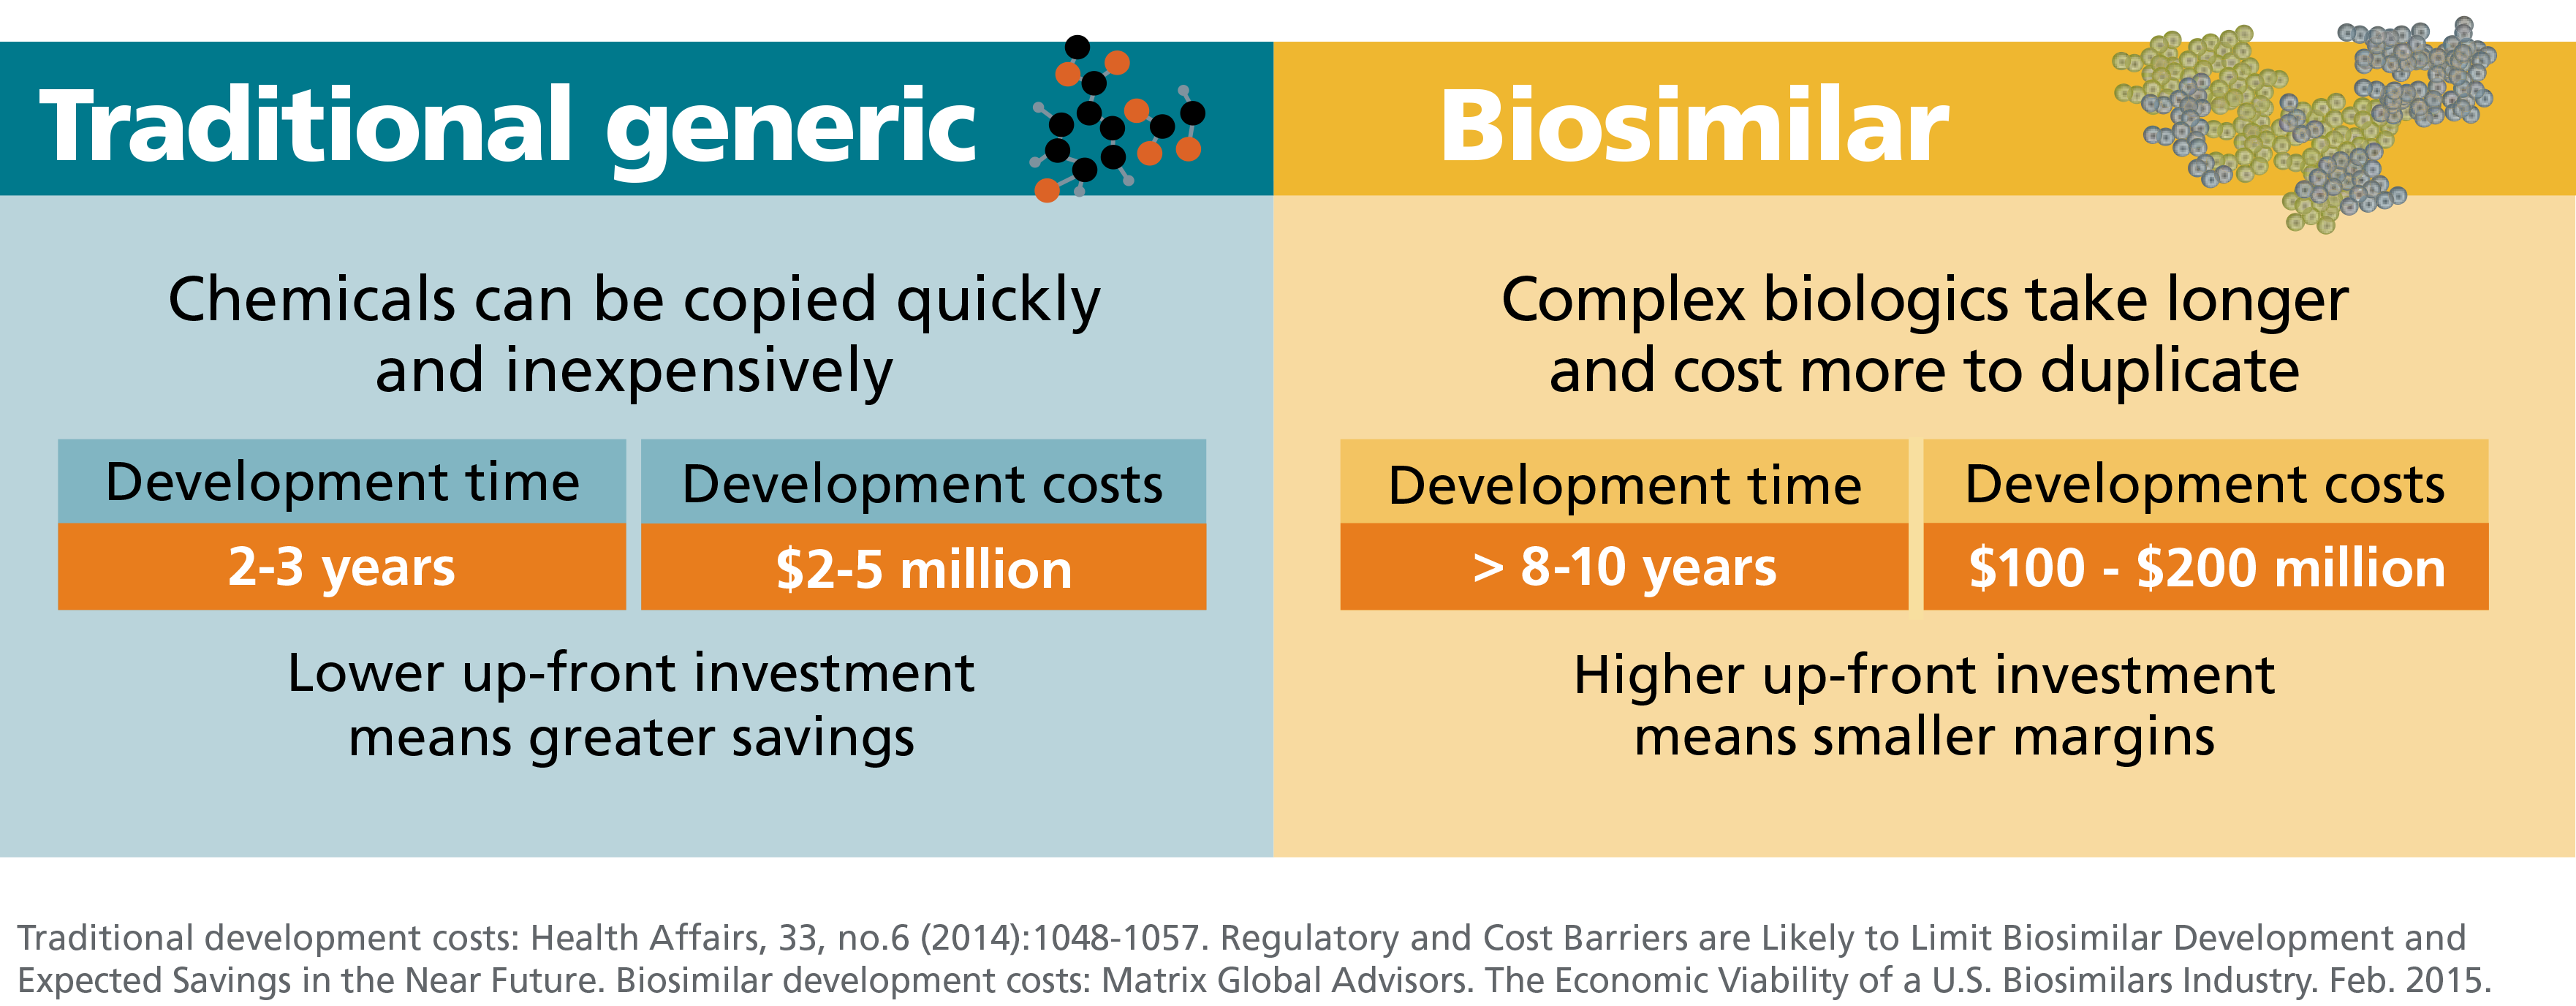 Graphic comparing development time and costs for traditional generics and biosimilars